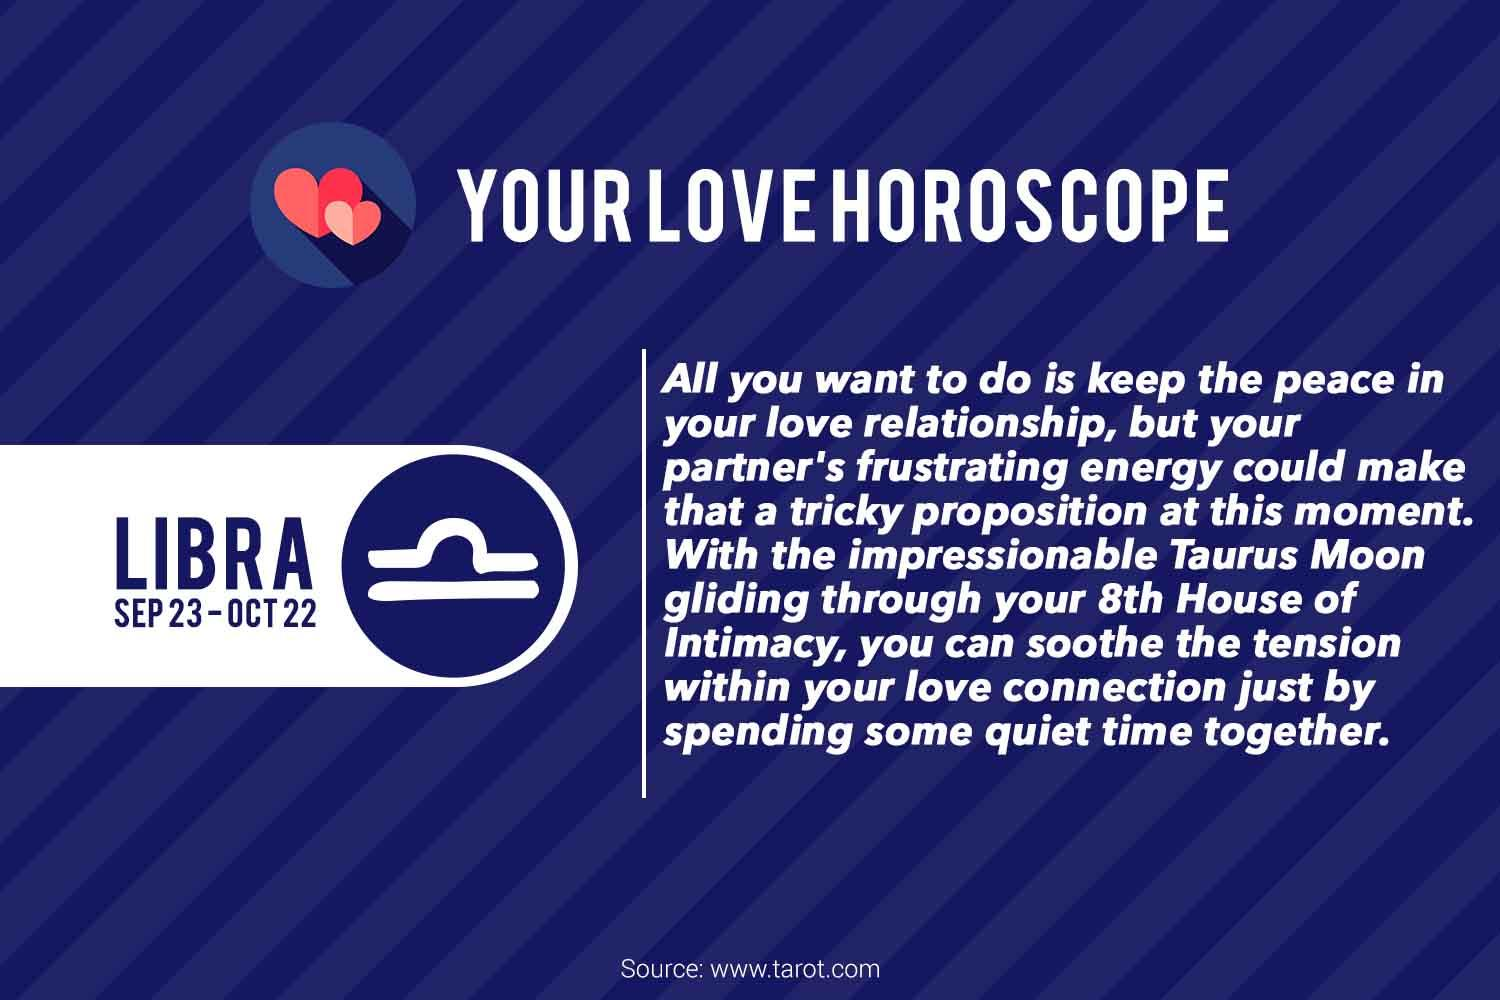 Love Horoscope | Image for InUth.com